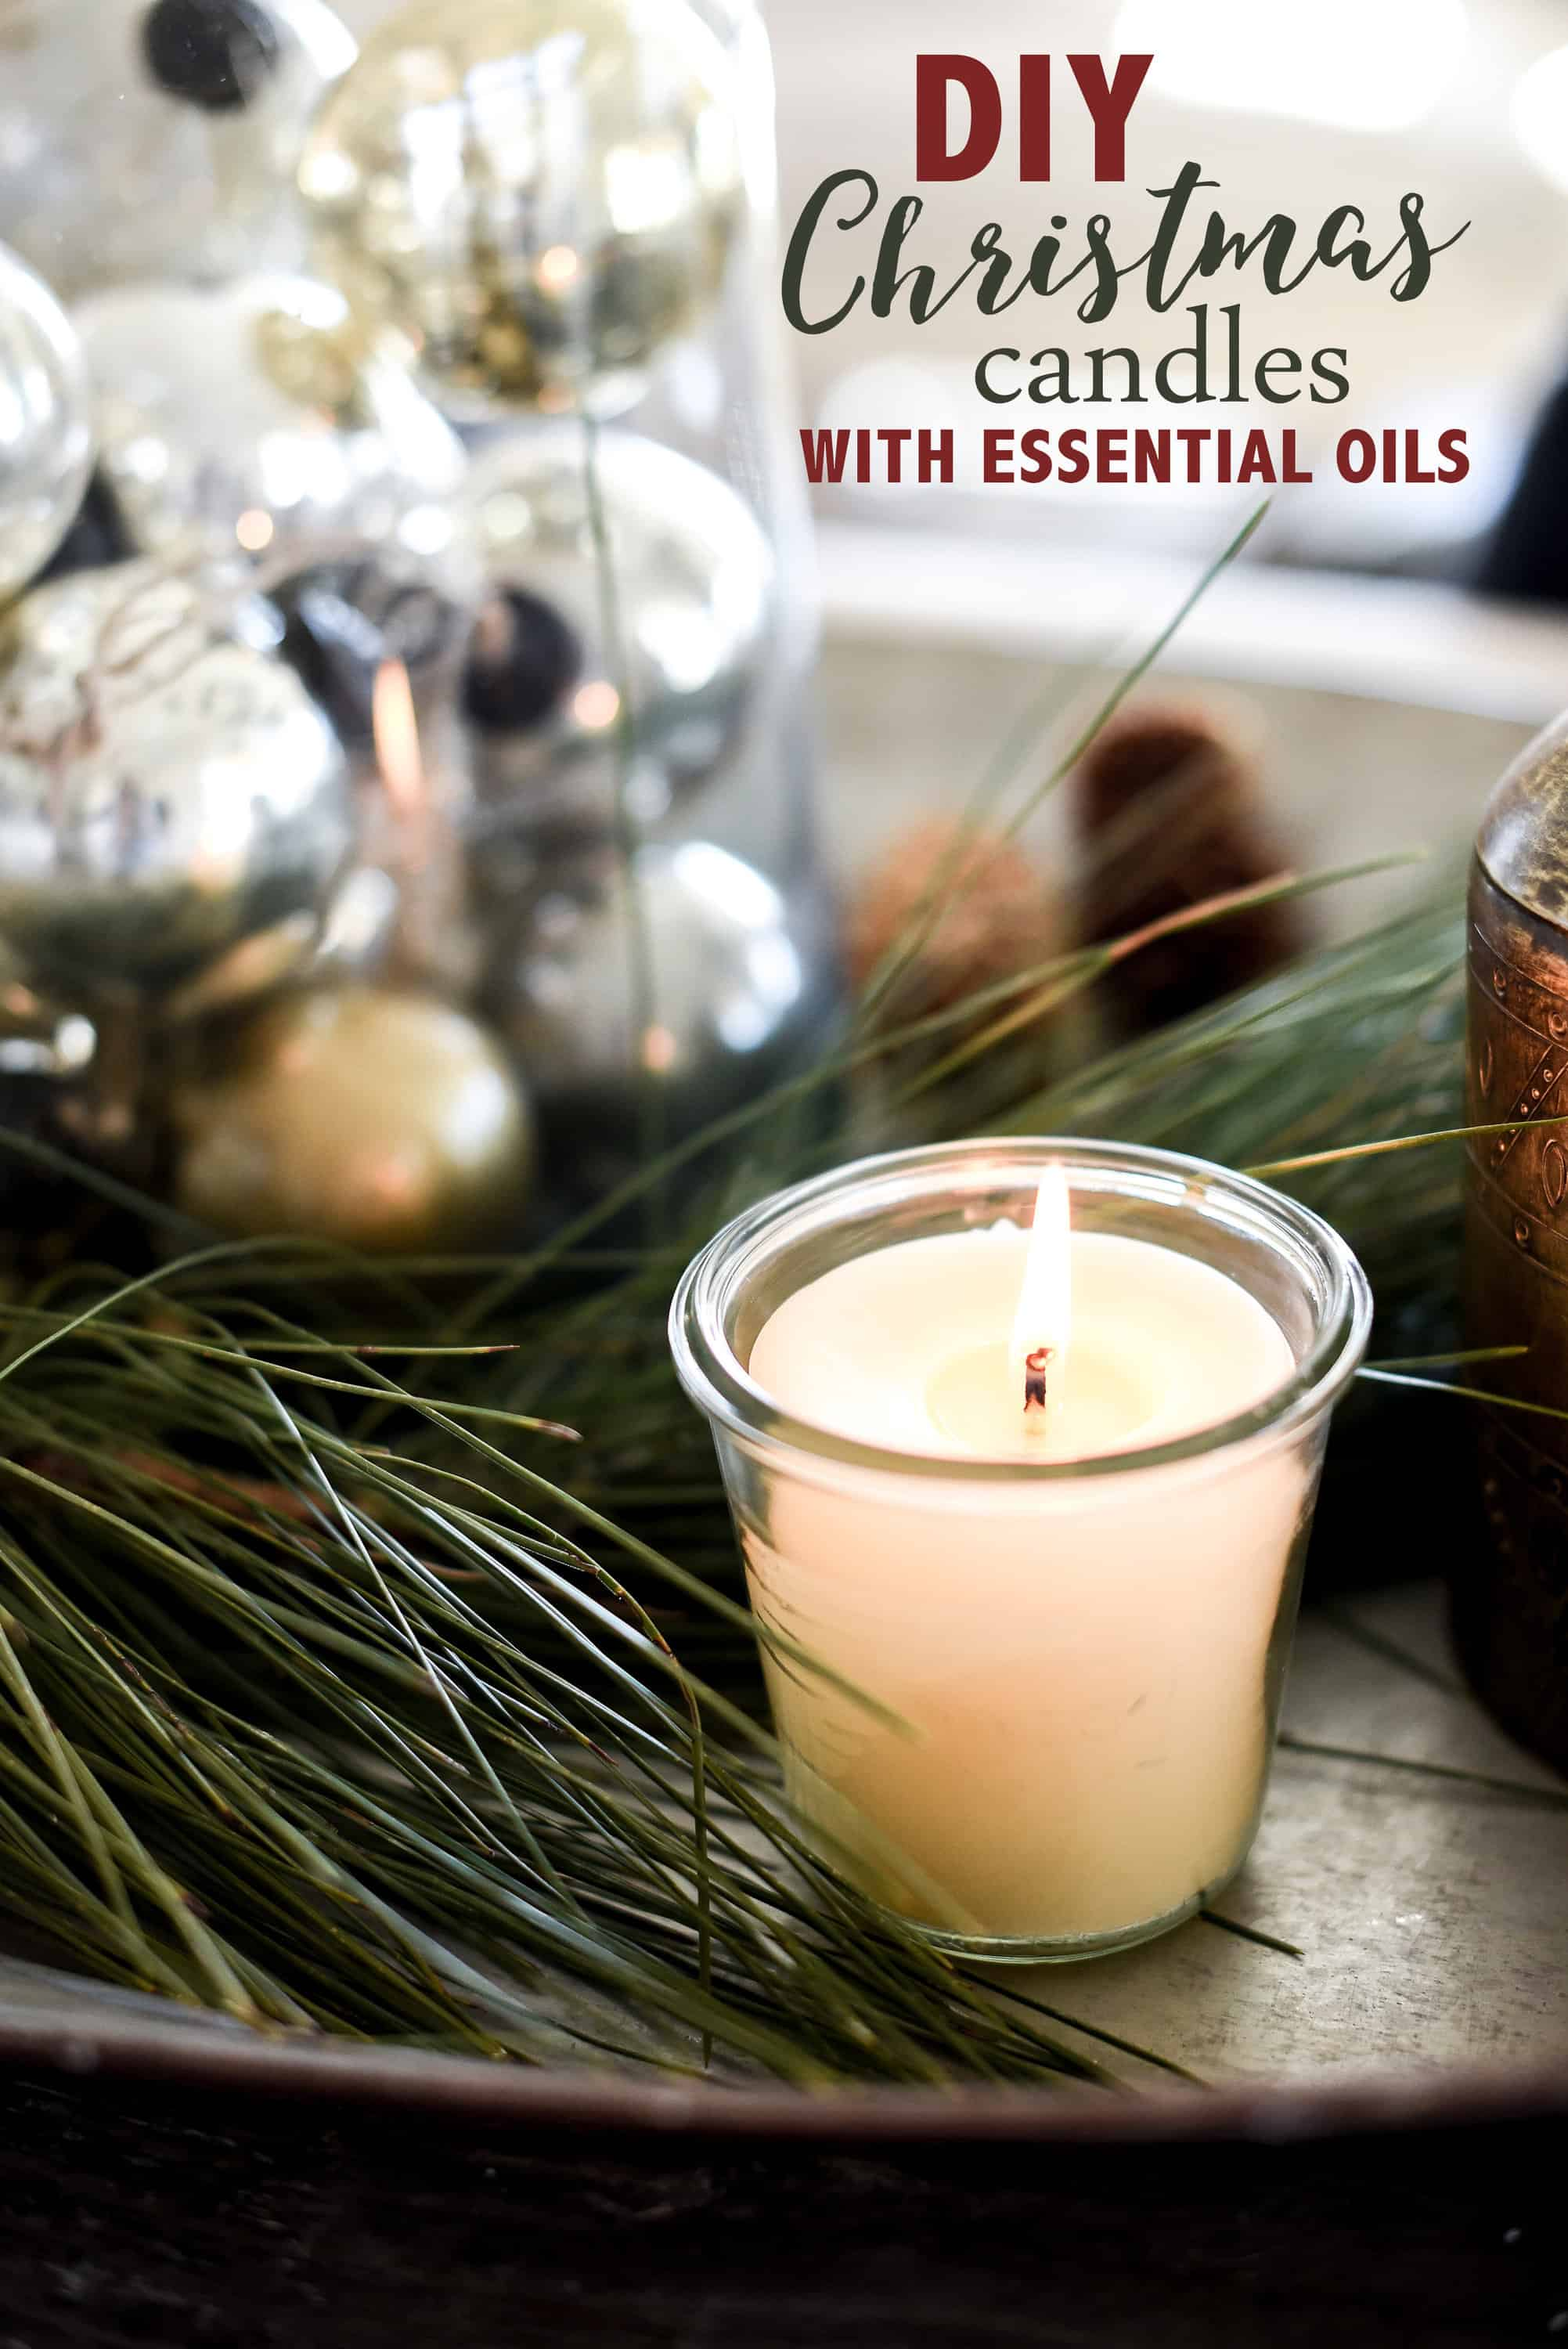 Need a handmade Christmas gift idea? You won't believe how easy it is to make all-natural homemade candles!